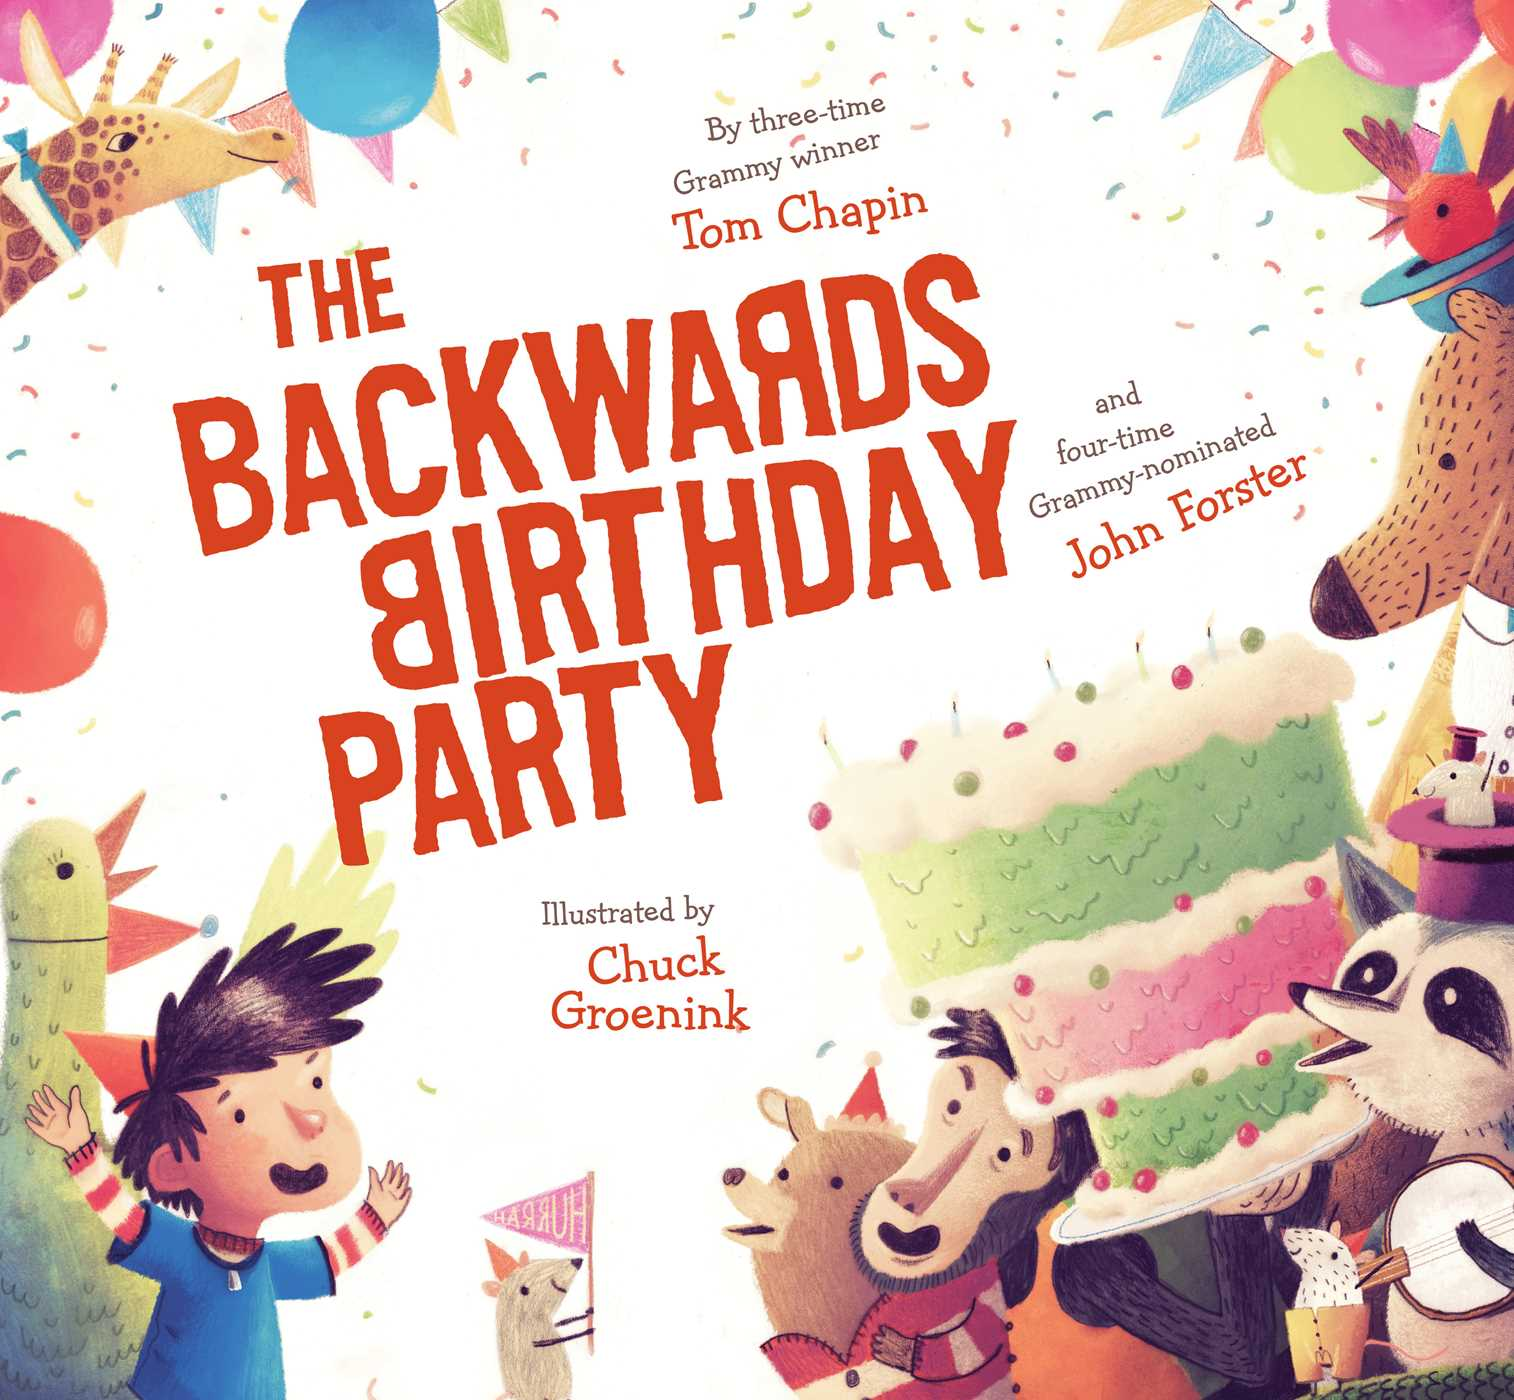 Remarkable Backwards Birthday Party Hr Backwards Birthday Party Book By Tom John Forster Happy Birthday Scrapbooks Happy Birthday Jesus Books photos Happy Birthday Books